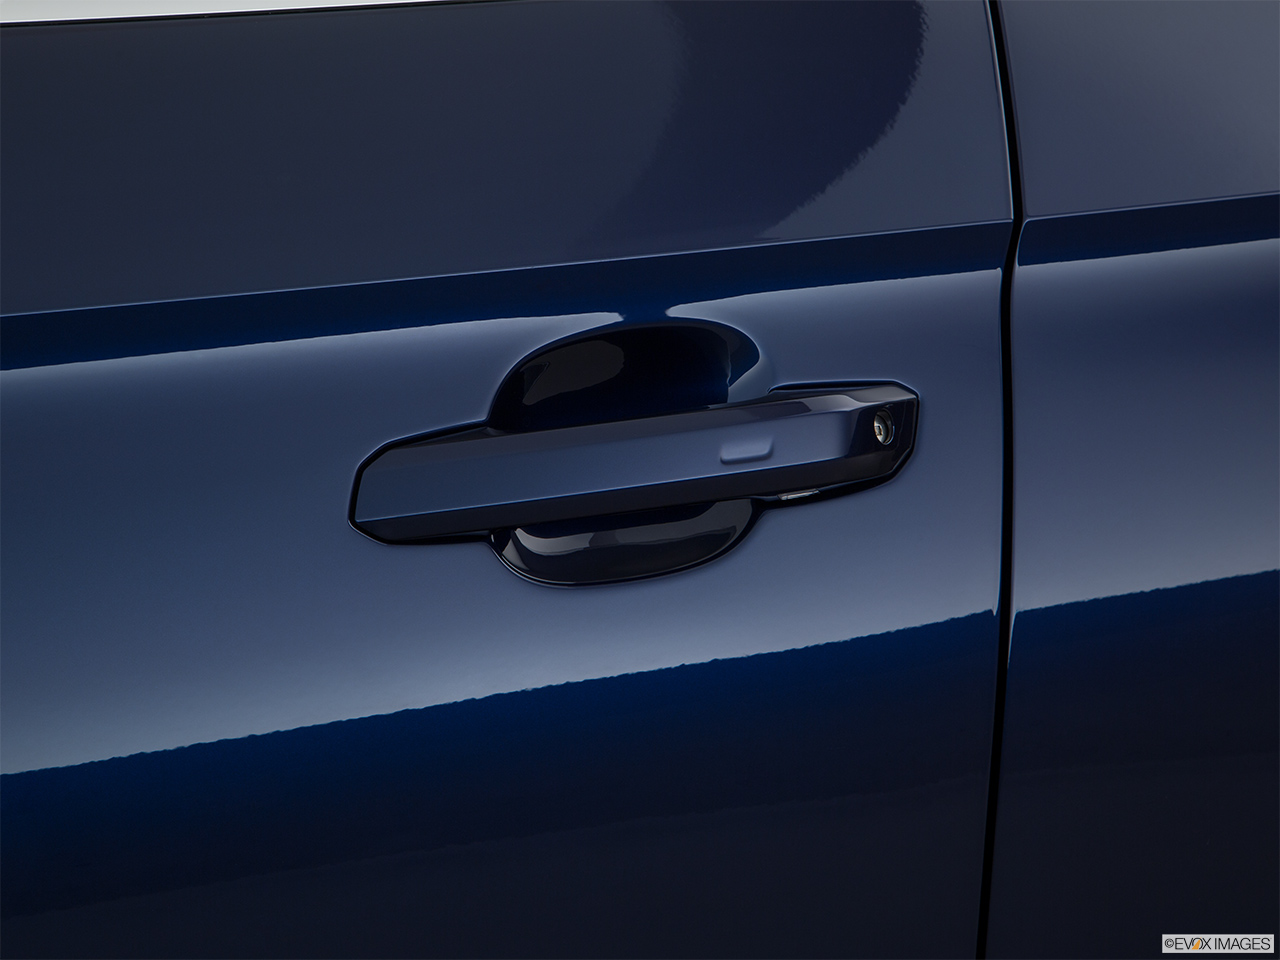 2019 Audi S5 Sportback Premium Plus 3.0 TFSI Drivers Side Door handle.